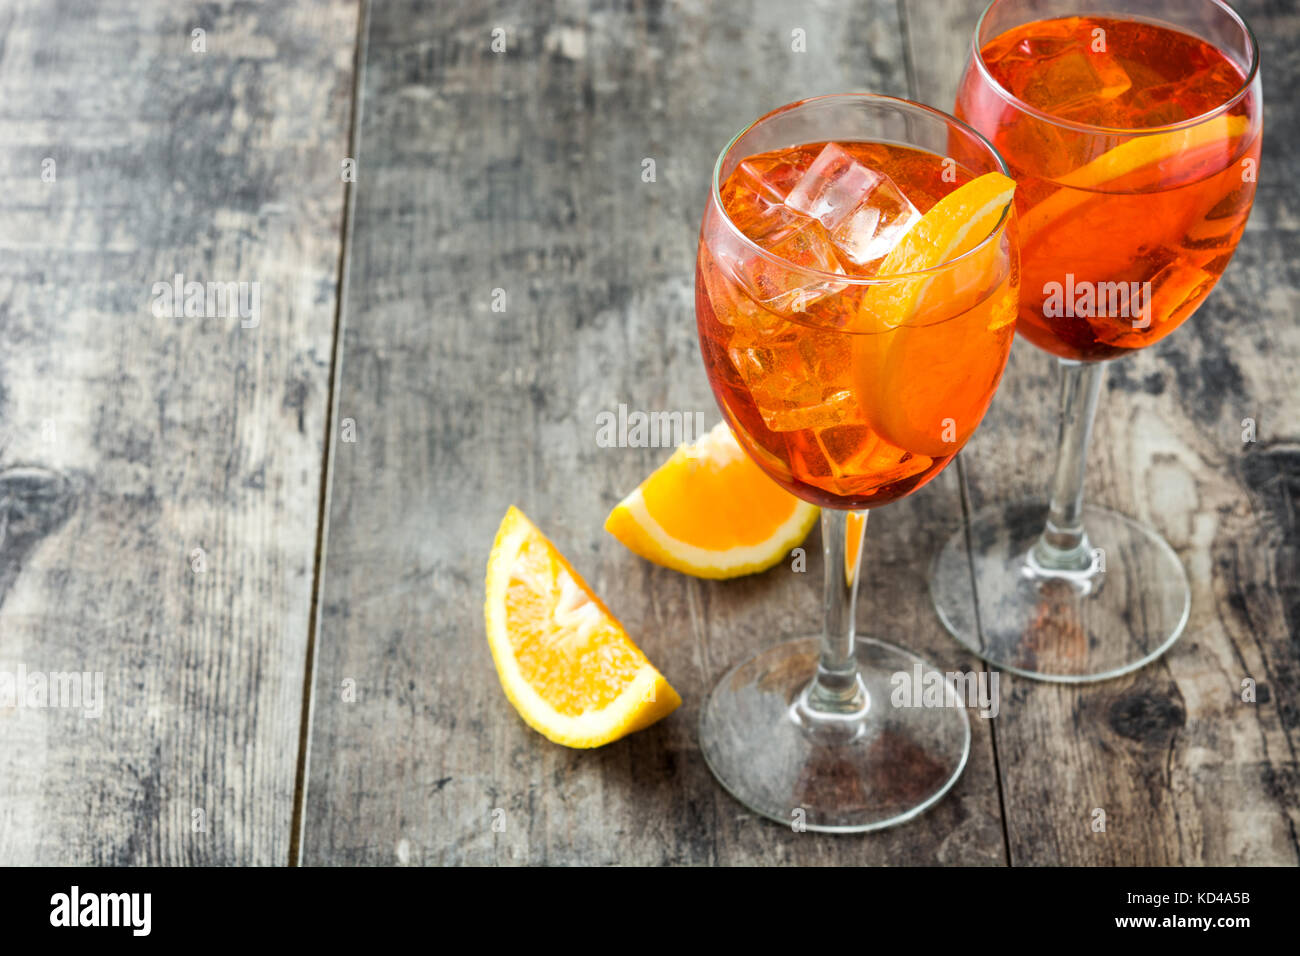 Aperol spritz cocktail in glass on wooden table - Stock Image